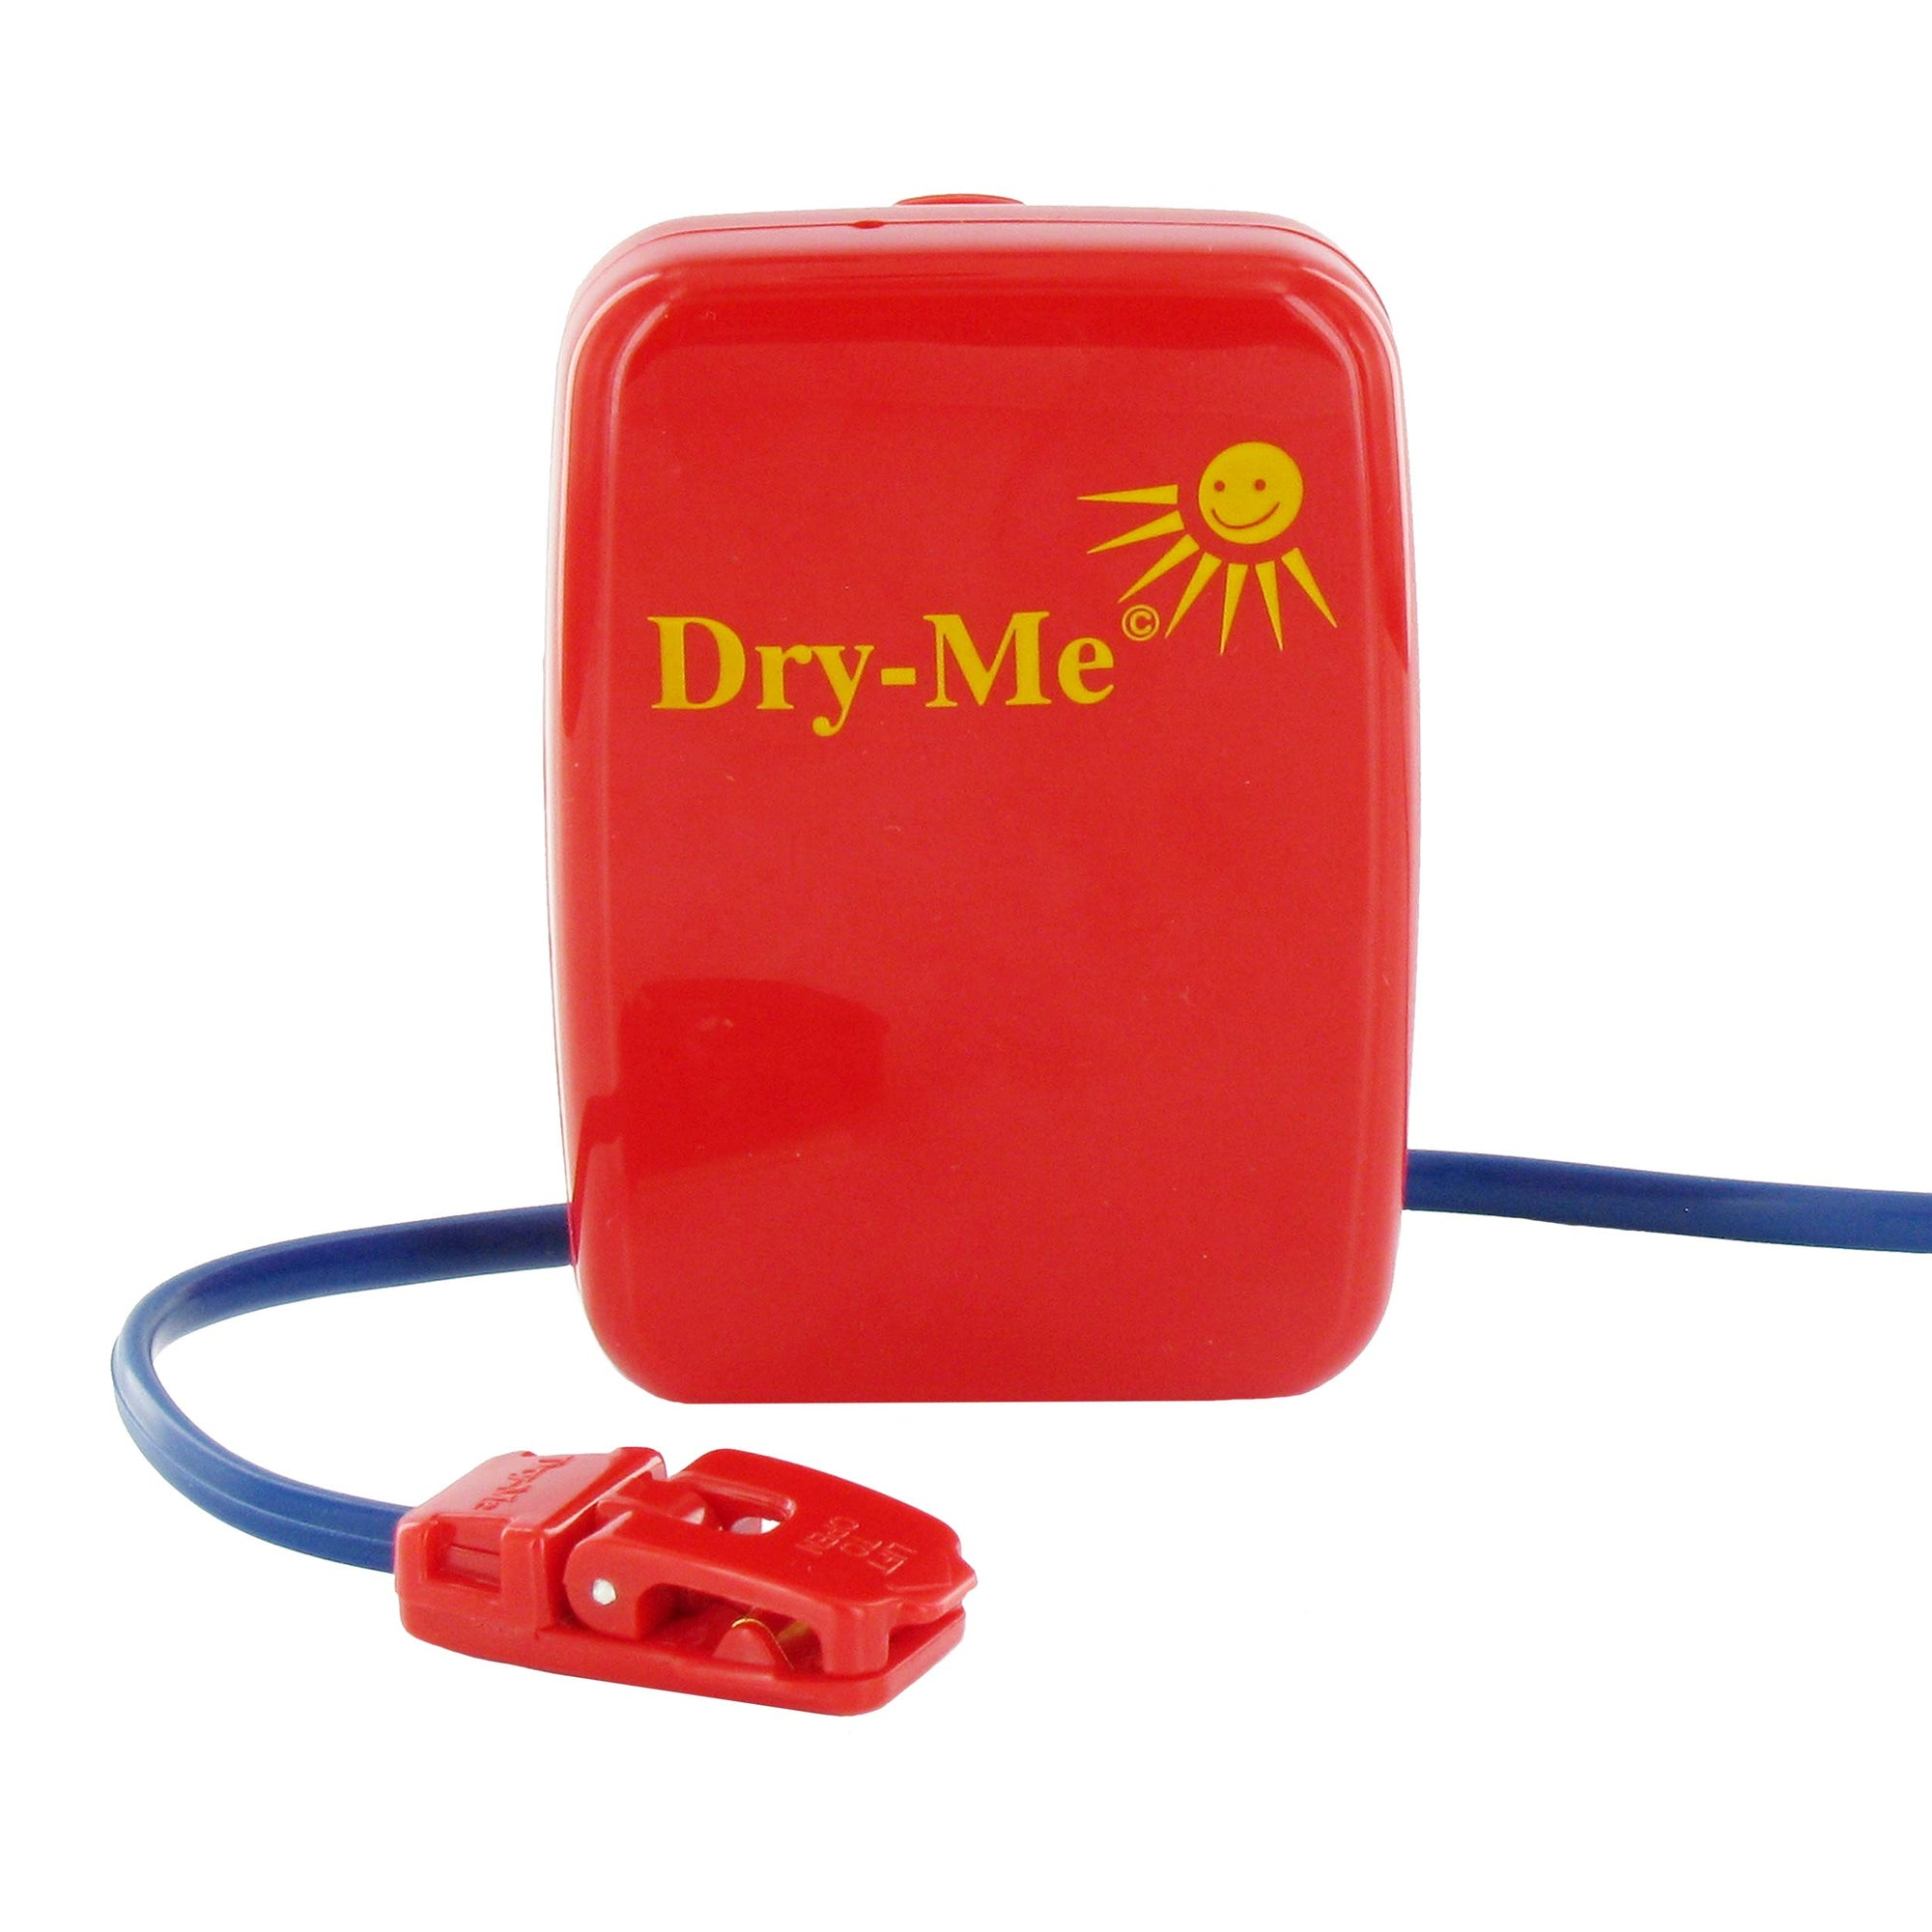 Alarms-Dry-Me Bedwetting Alarm